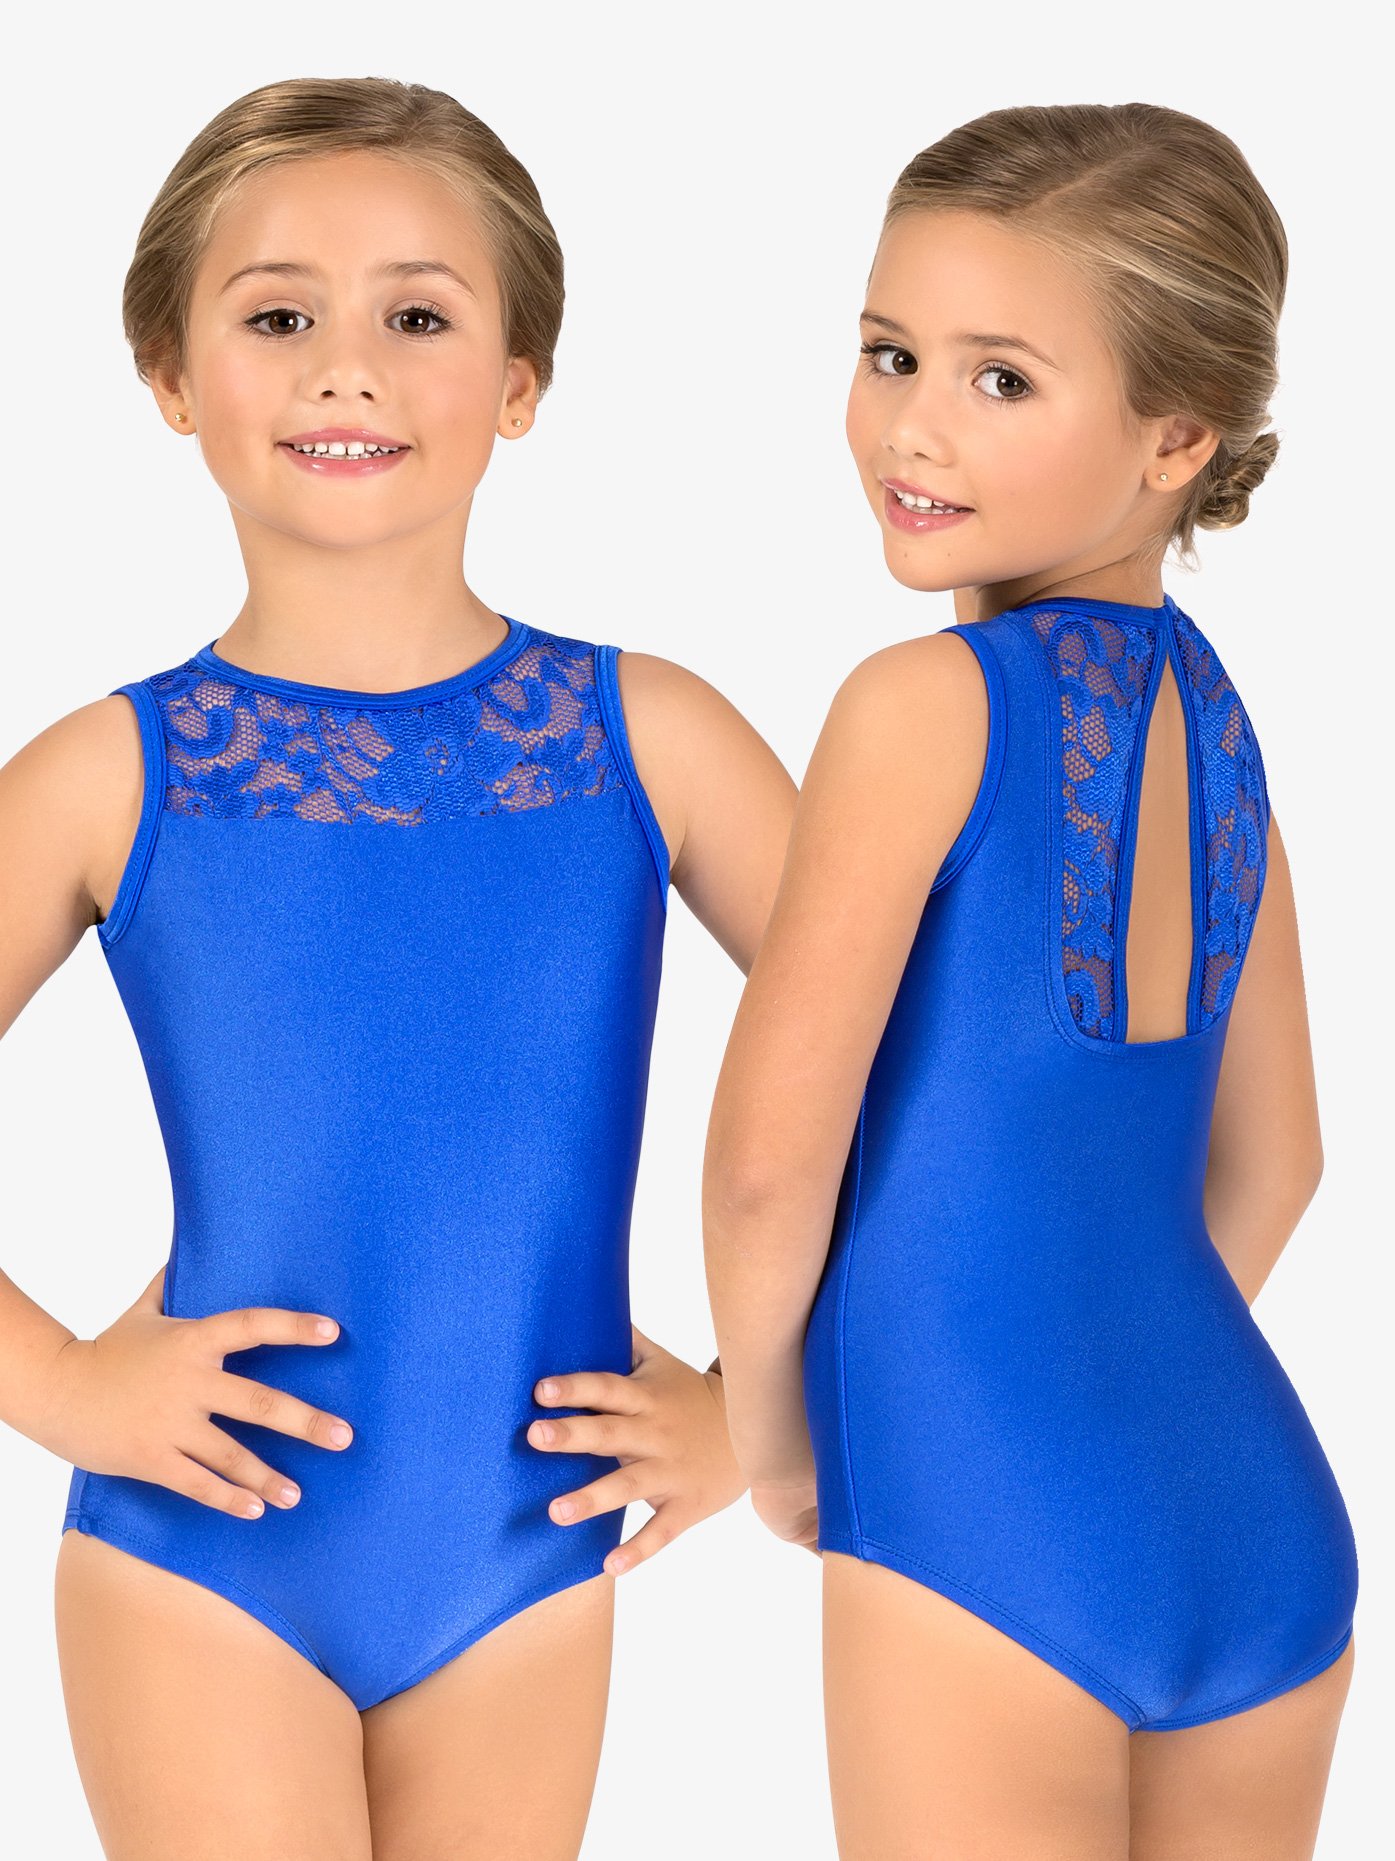 Double Platinum Child Emballe Lace Boatneck Tank Leotard N7264C